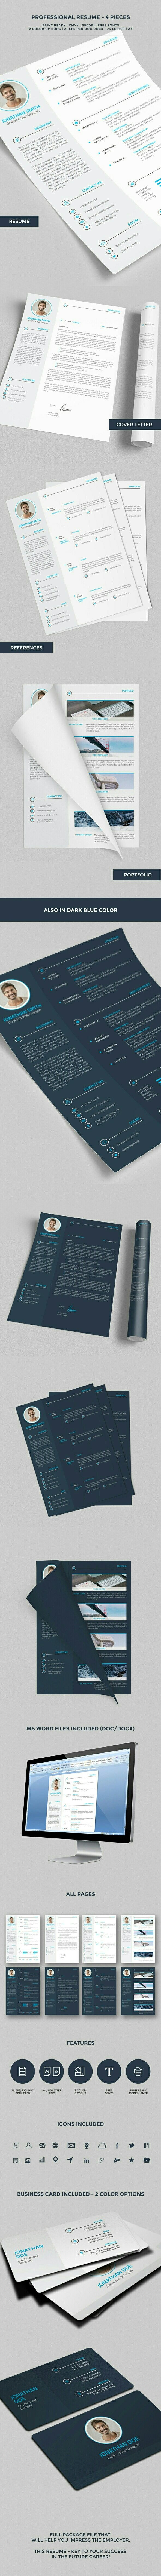 Resume Cv Templates Free Download%0A Us Map Labeled States And Capitals